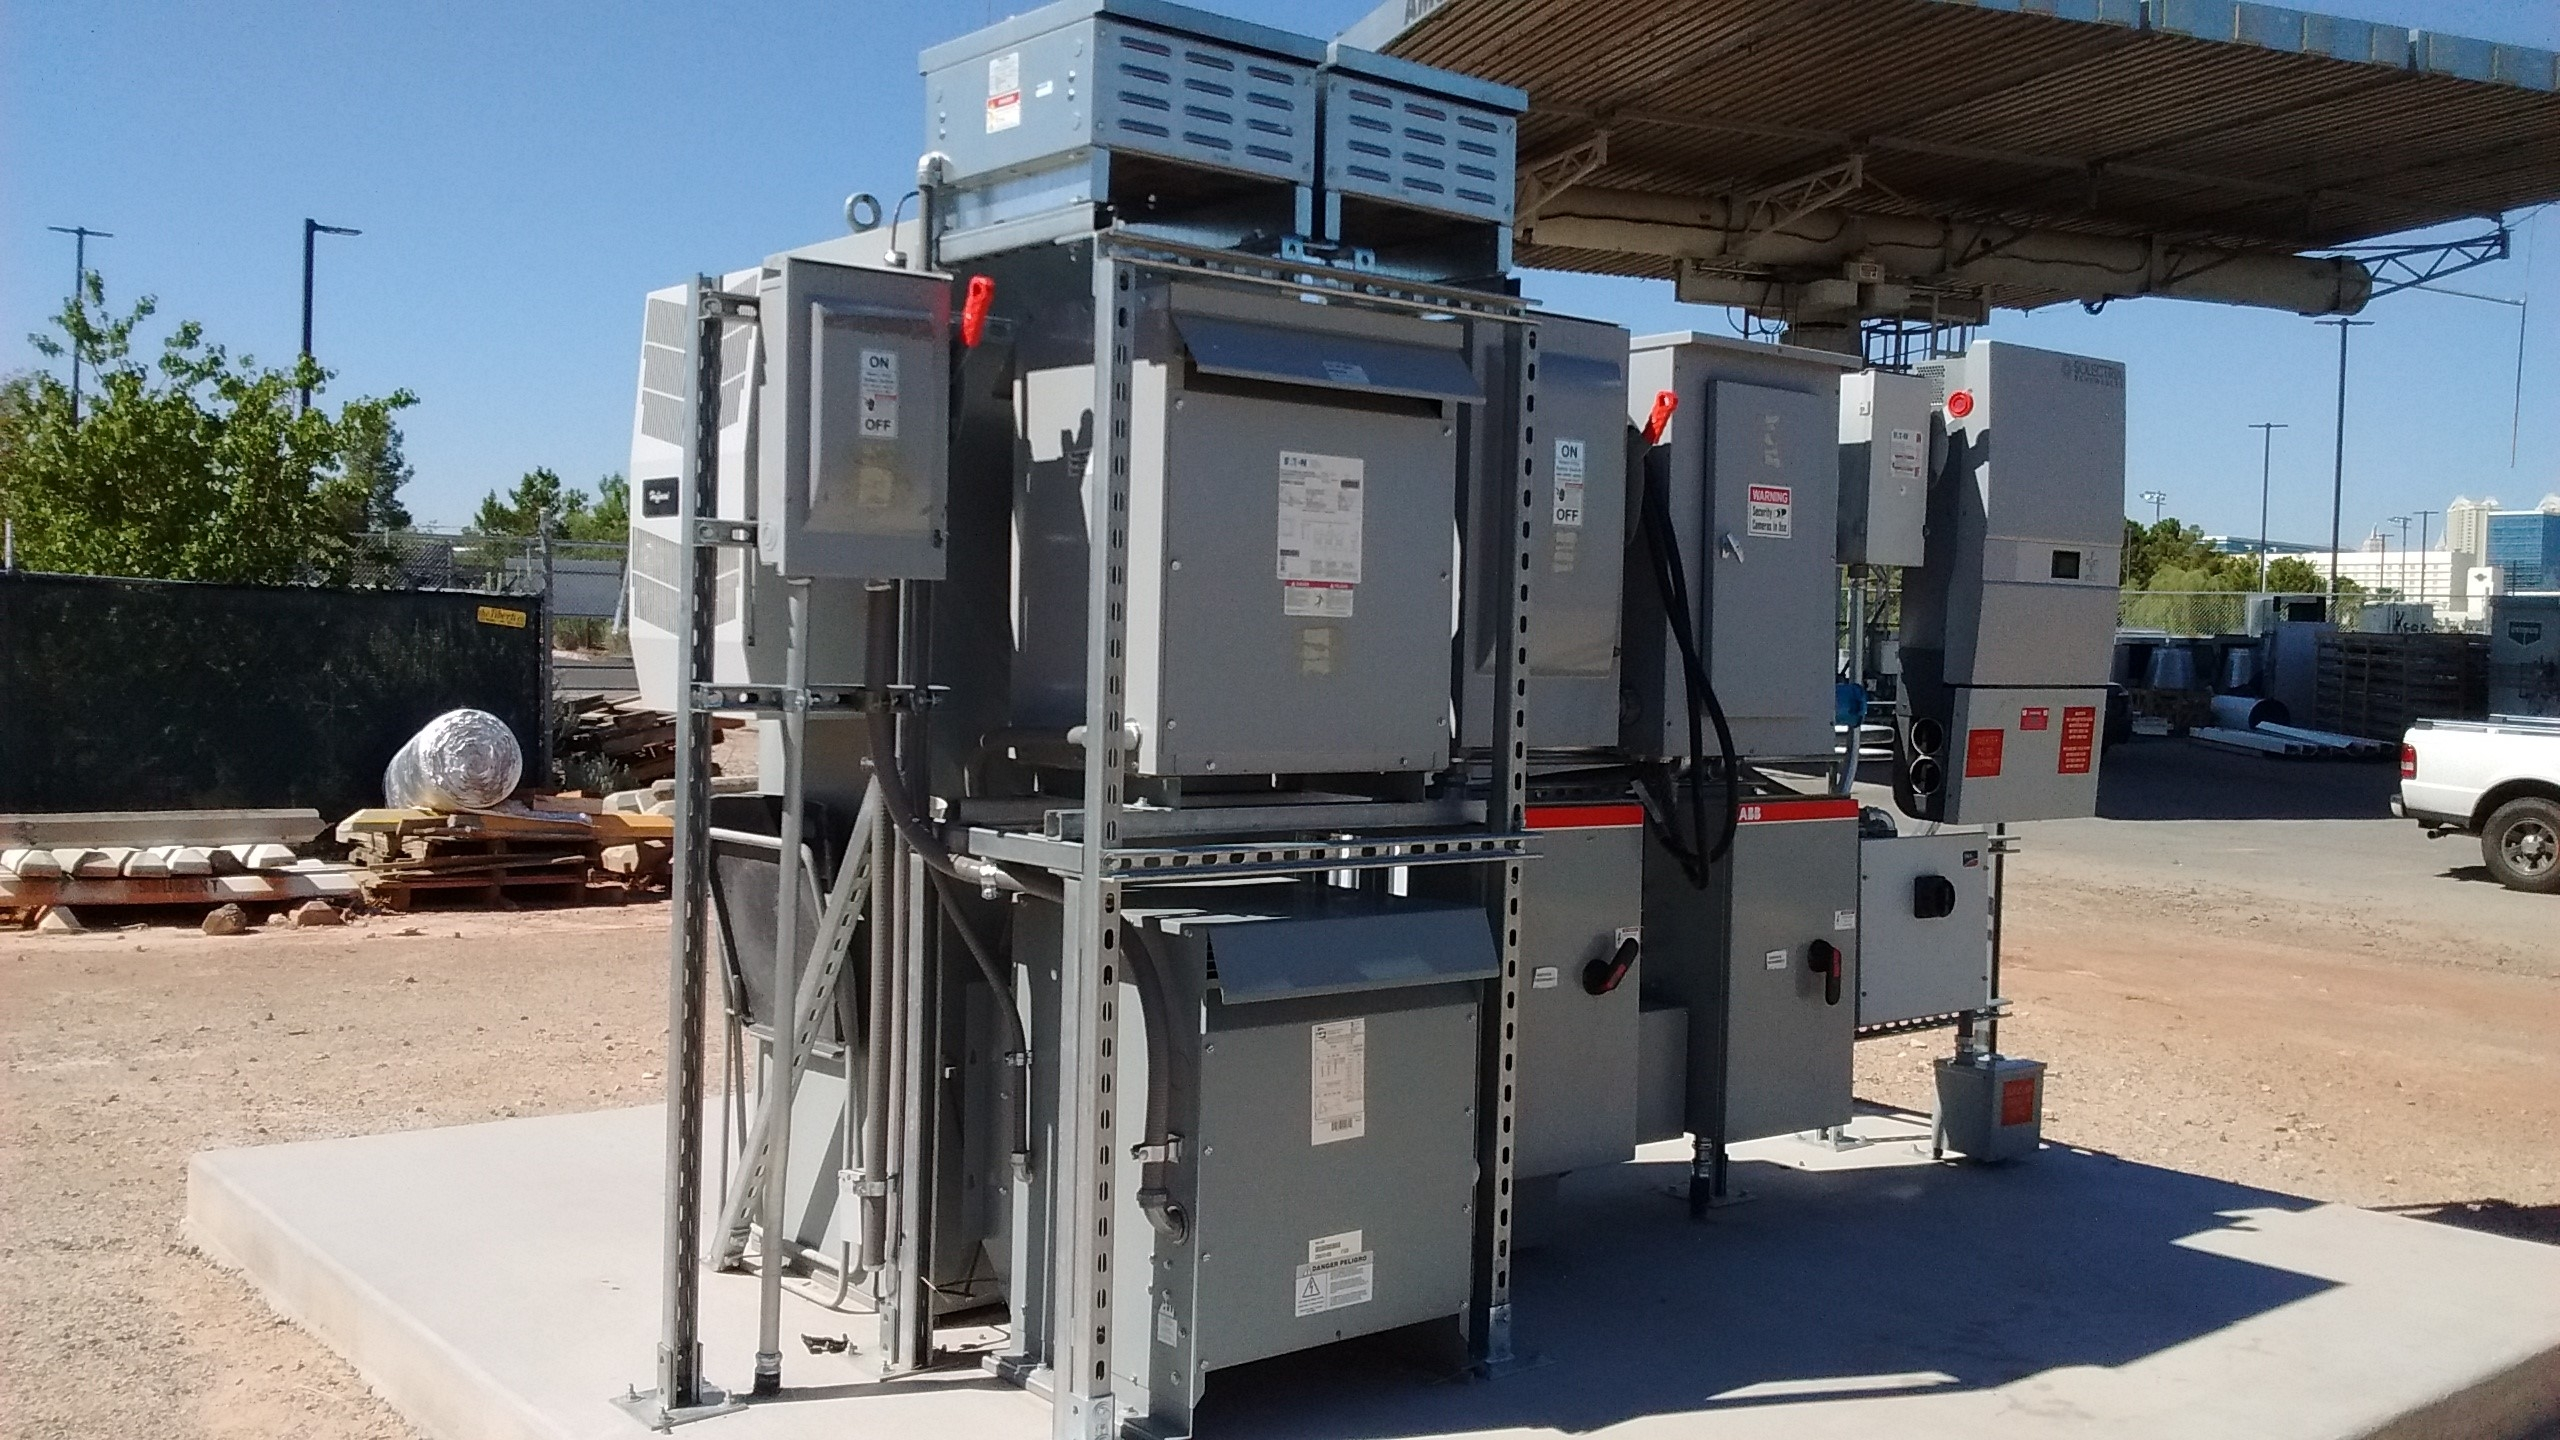 UNLV Microgrid front view